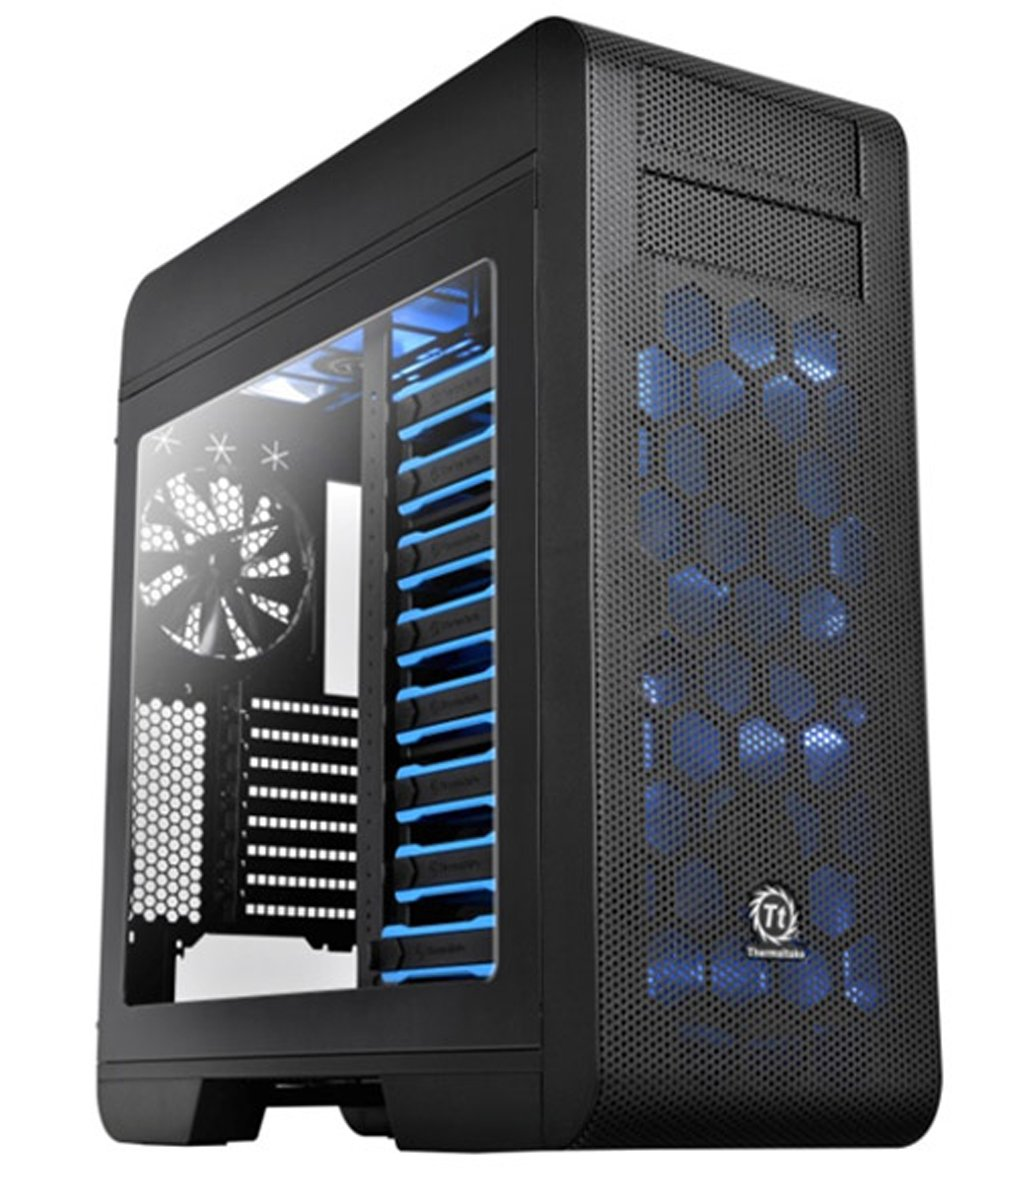 Custom Video Editing Rendering Media Workstation PC Intel Core i9 9920X 3.5Ghz